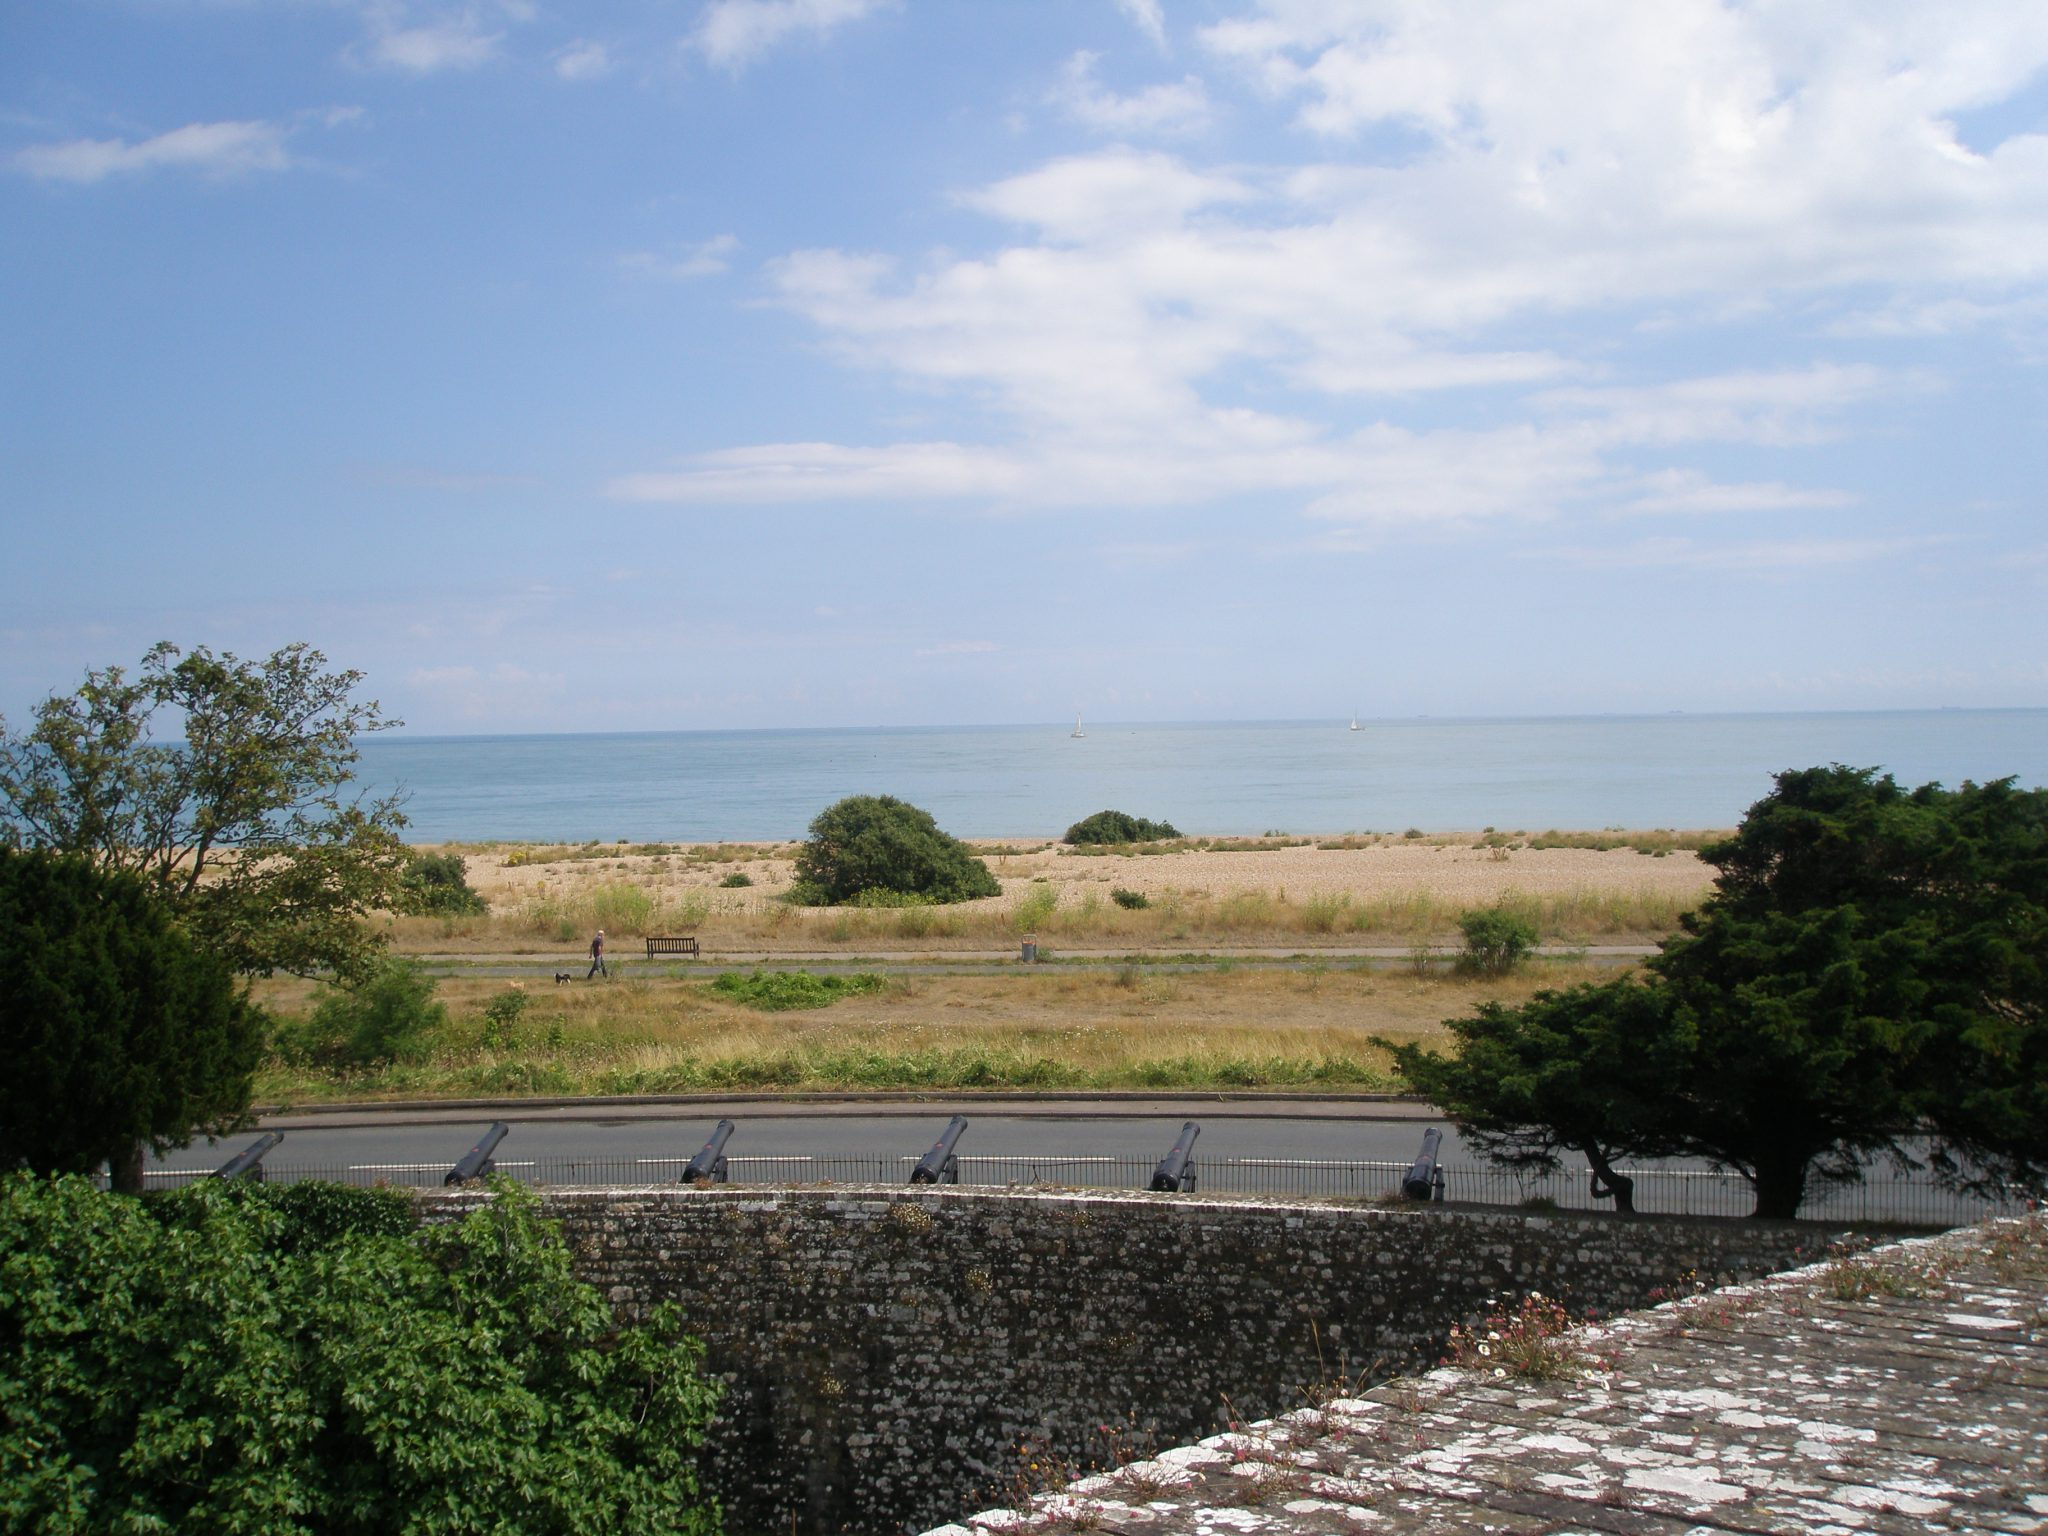 On the Ramparts, banks of cannon face the sea (...and France).